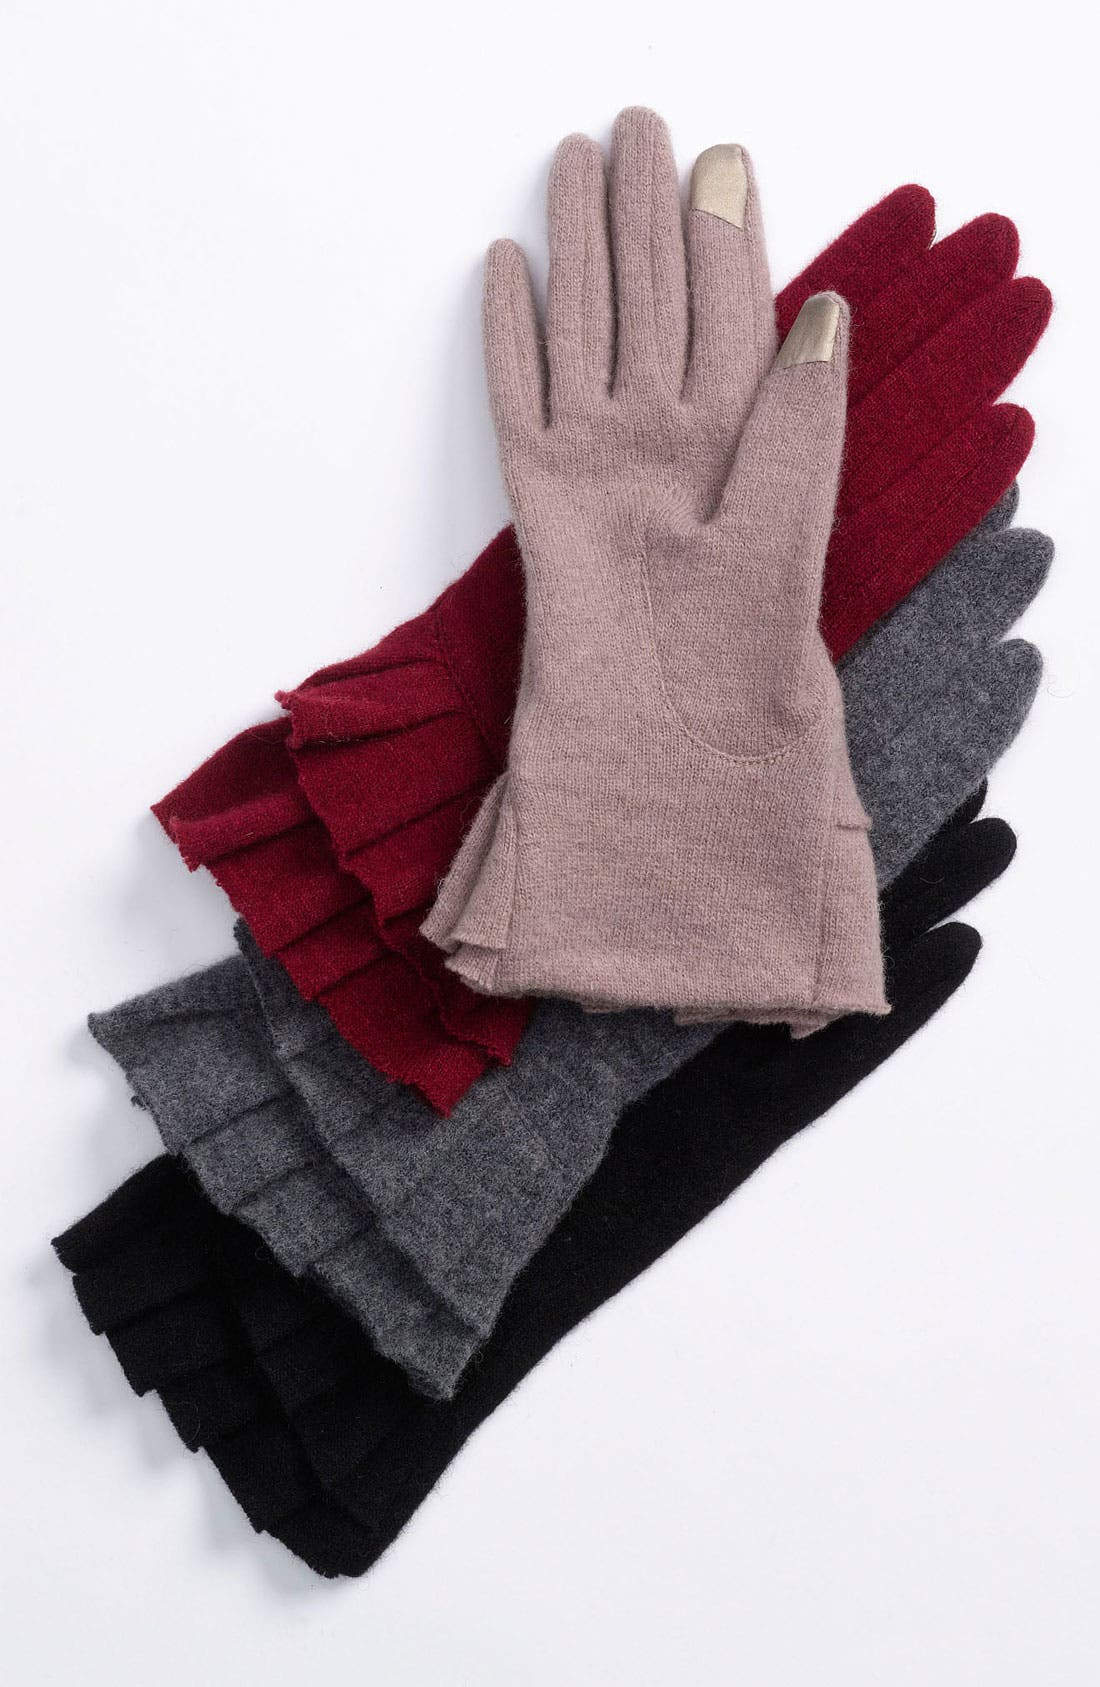 Alternate Image 1 Selected - Nordstrom Ruffle Tech Gloves